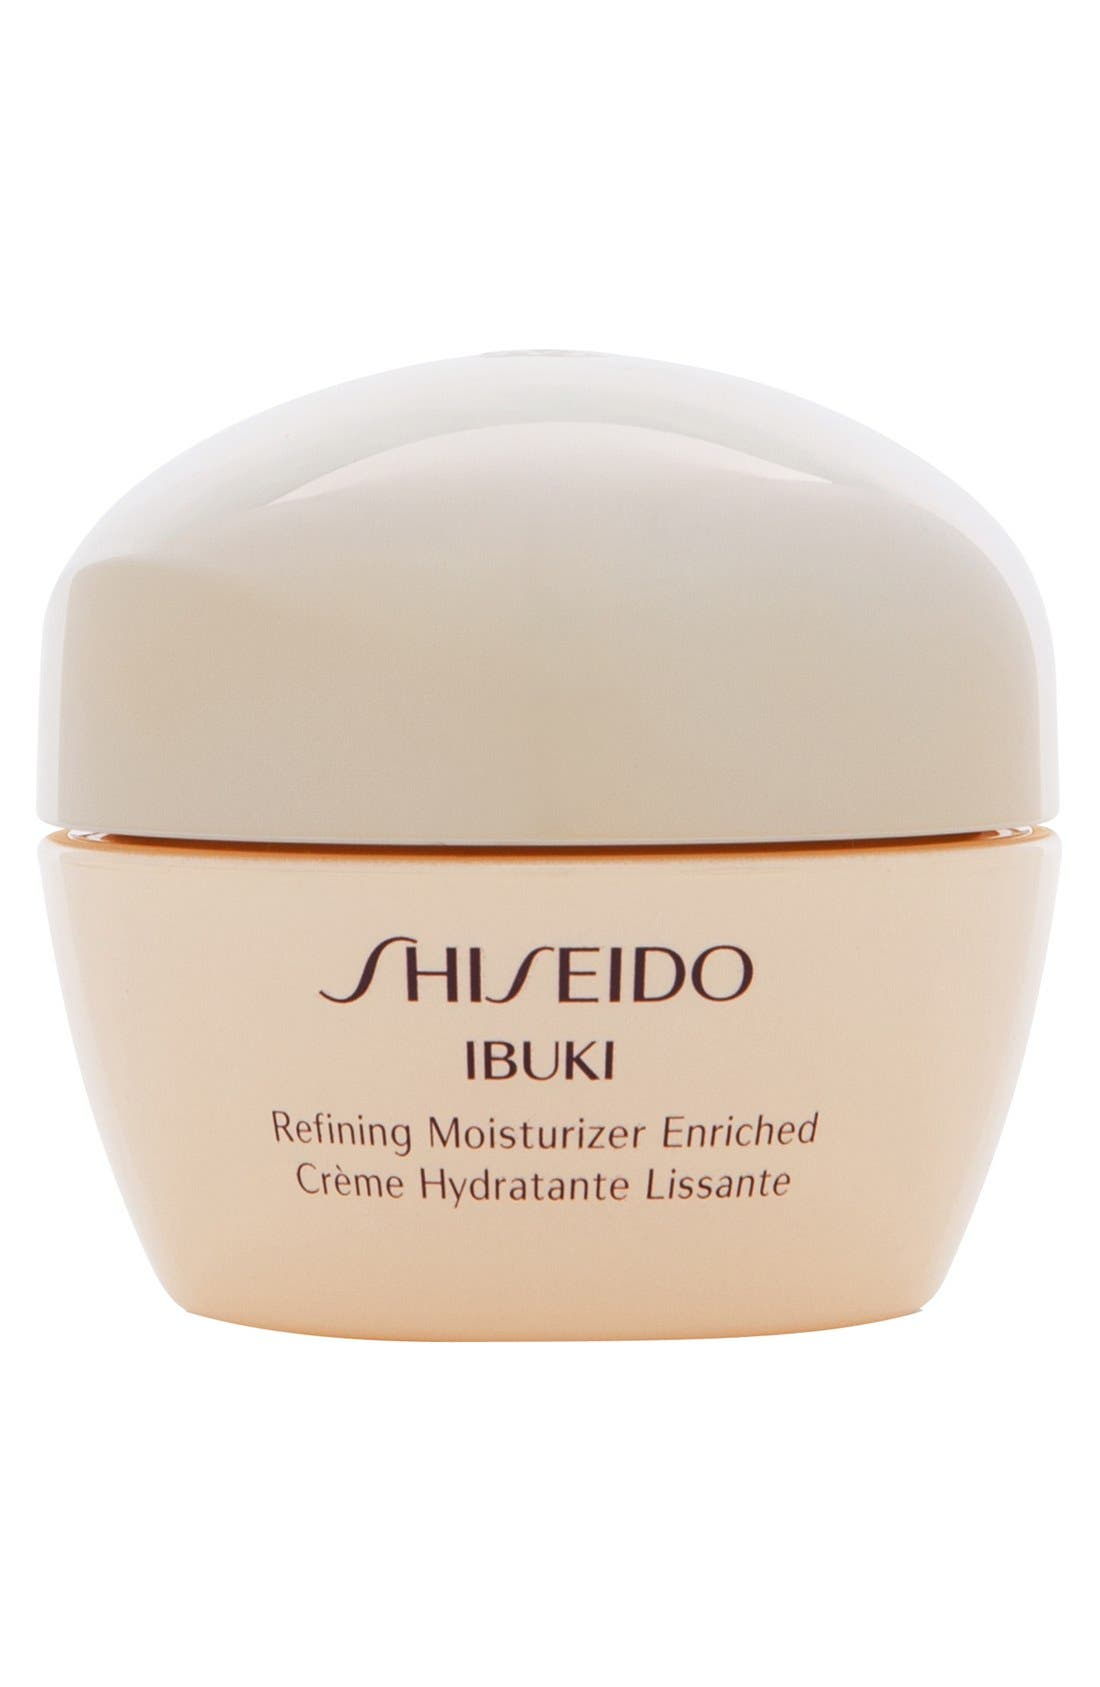 Ibuki Refining Moisturizer Enriched,                         Main,                         color, NO COLOR